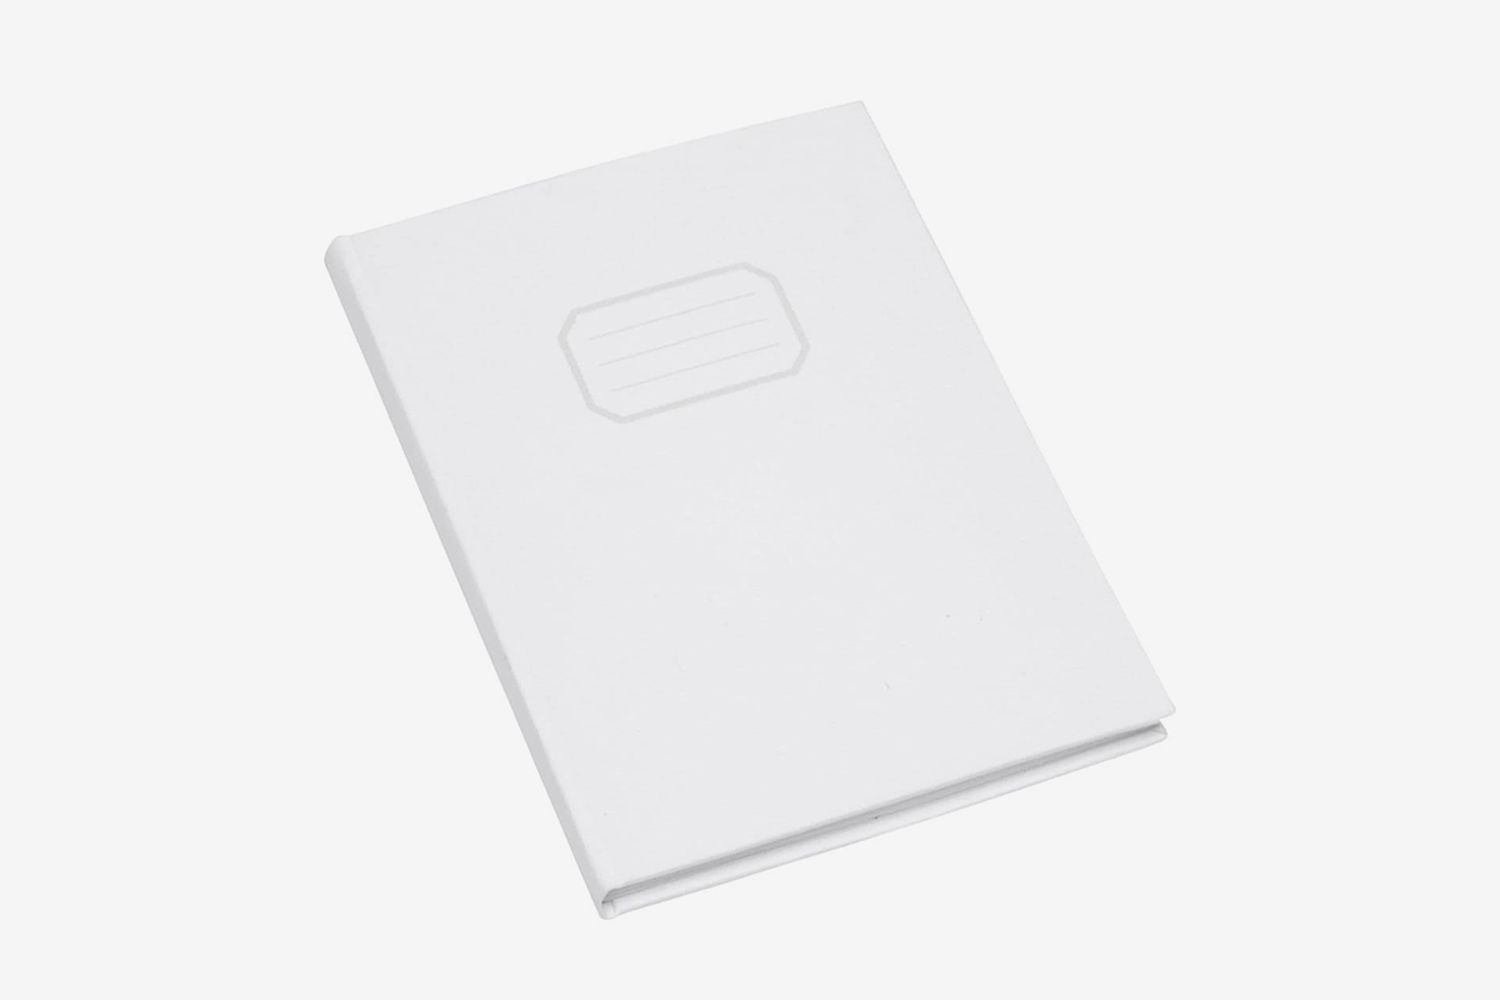 Cotton Paper Notebook